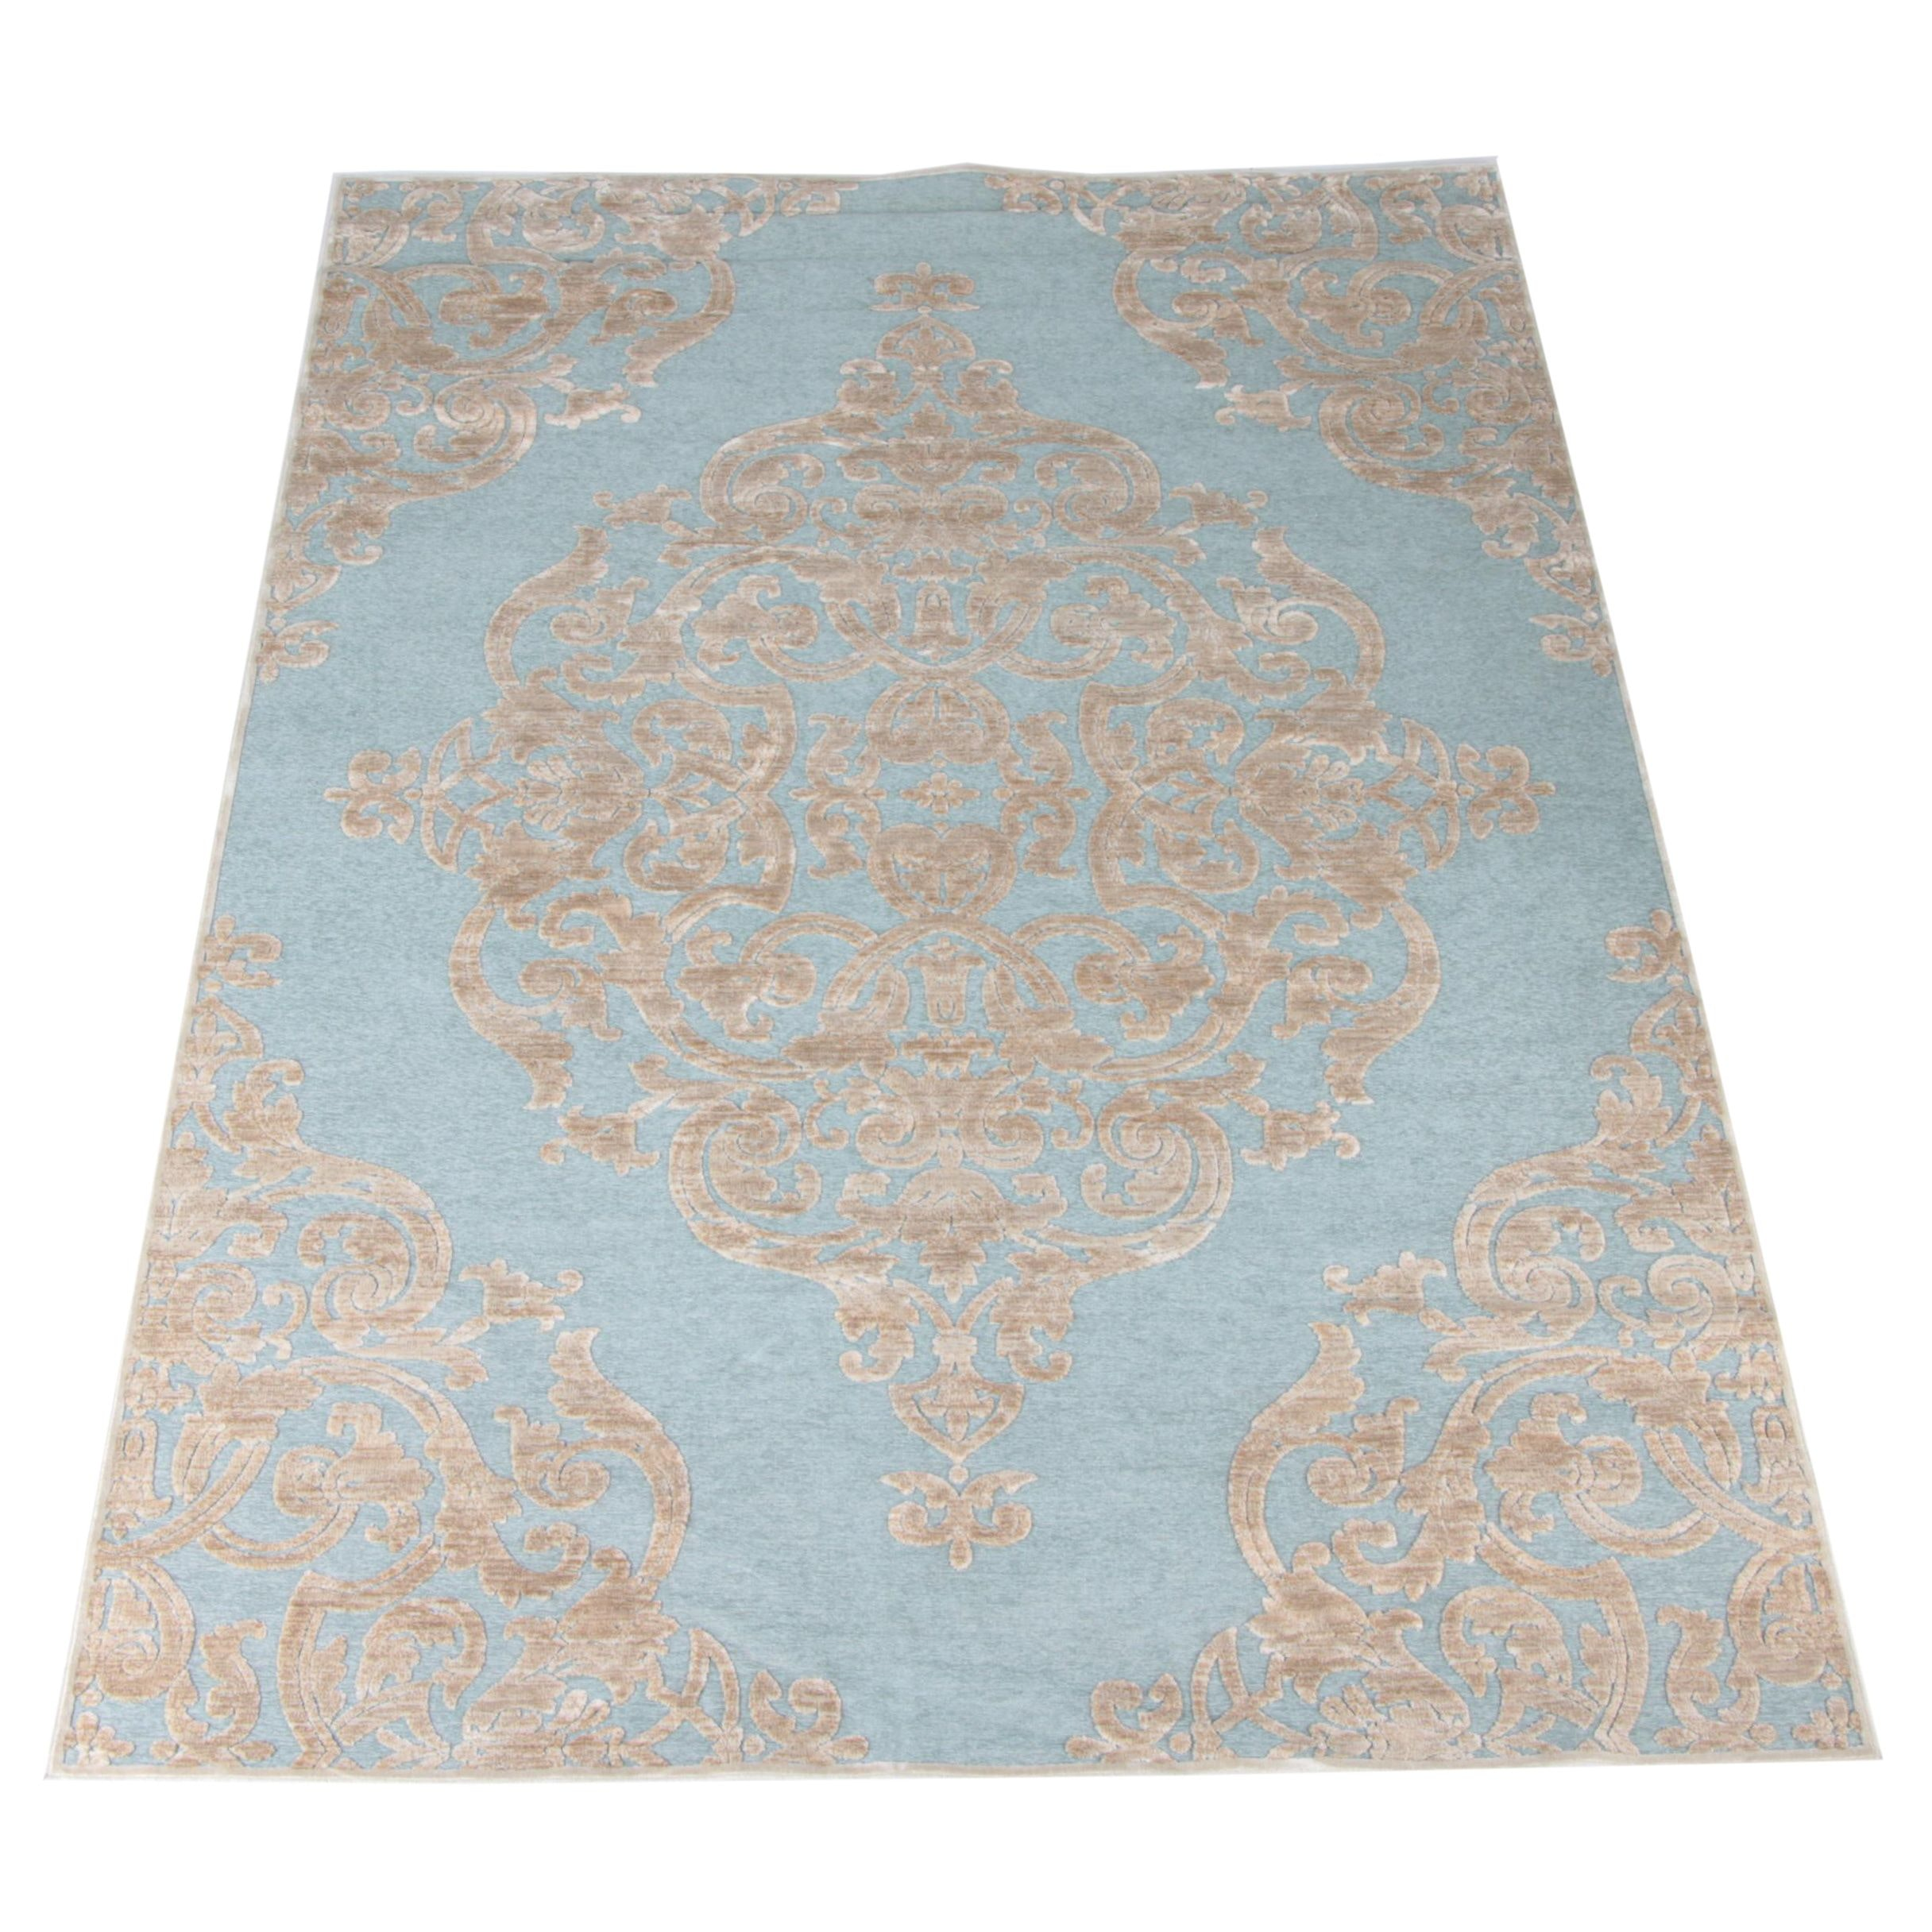 "Power-Loomed Safavieh ""Paradis"" Chenille Area Rug"